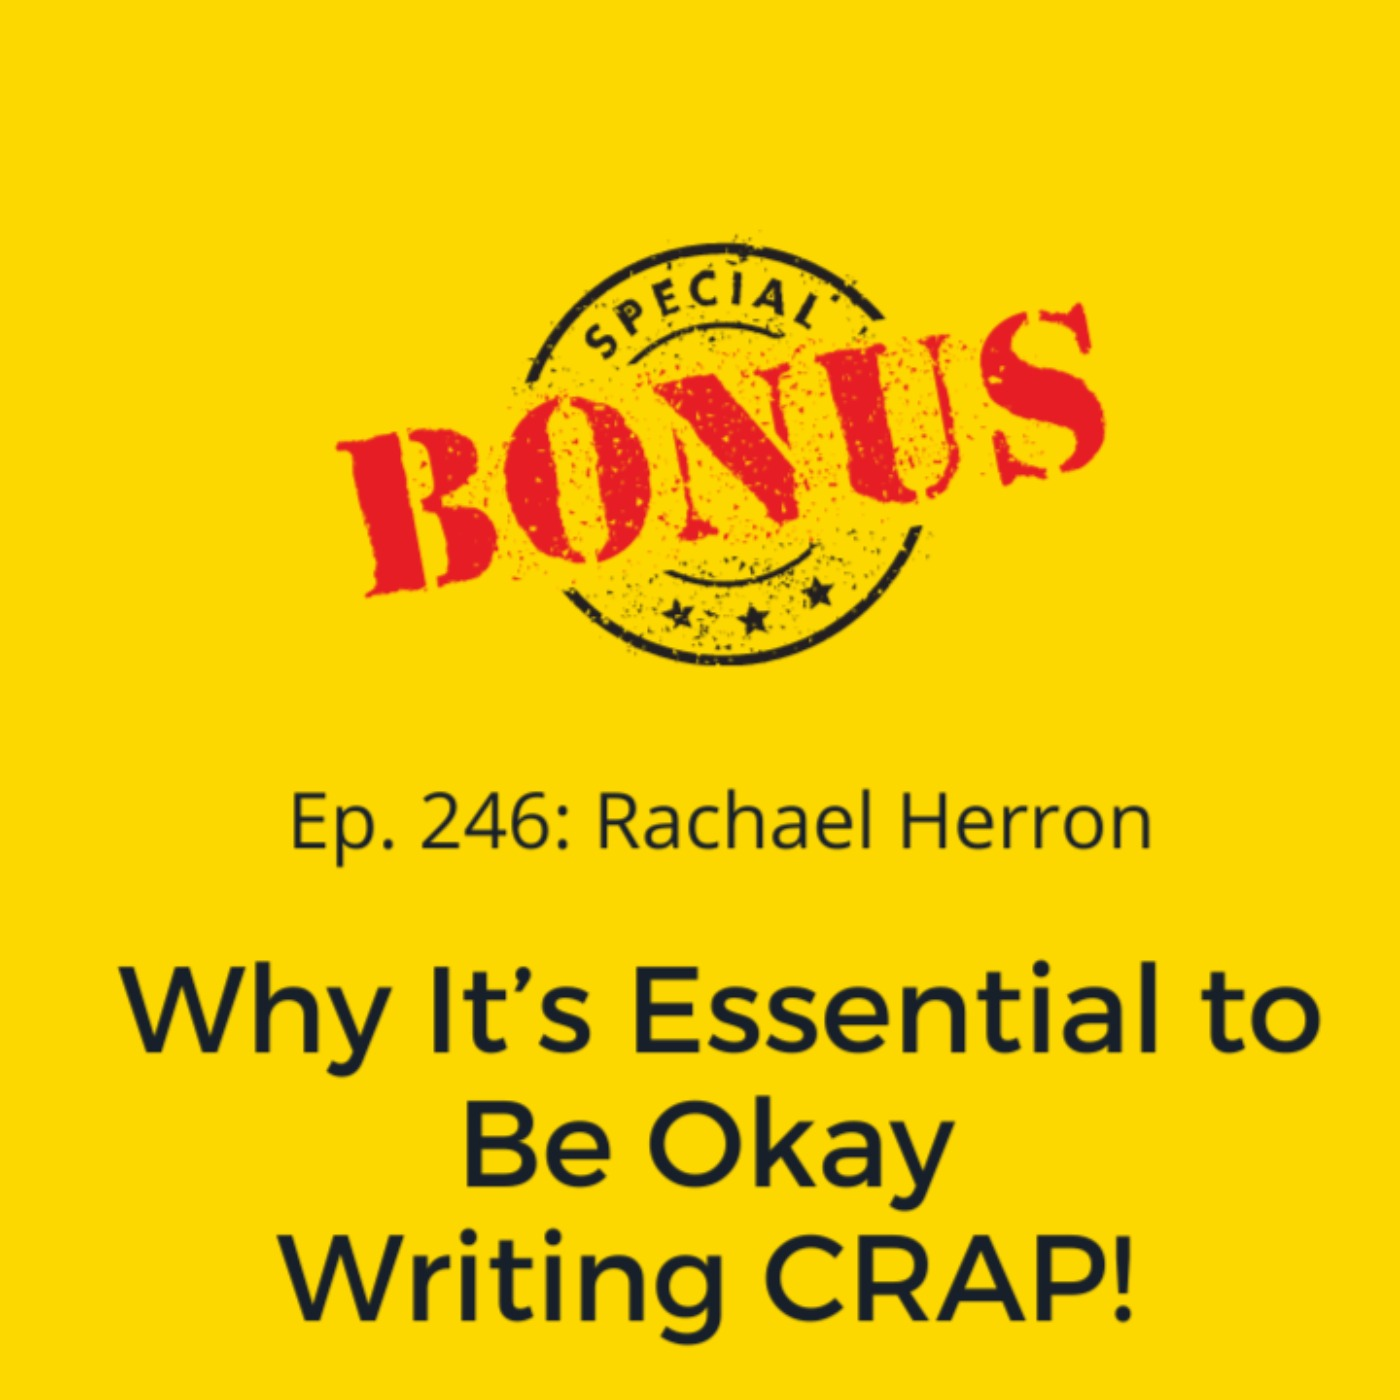 Ep. 246: Why It's Essential to Be Okay with Writing CRAP!